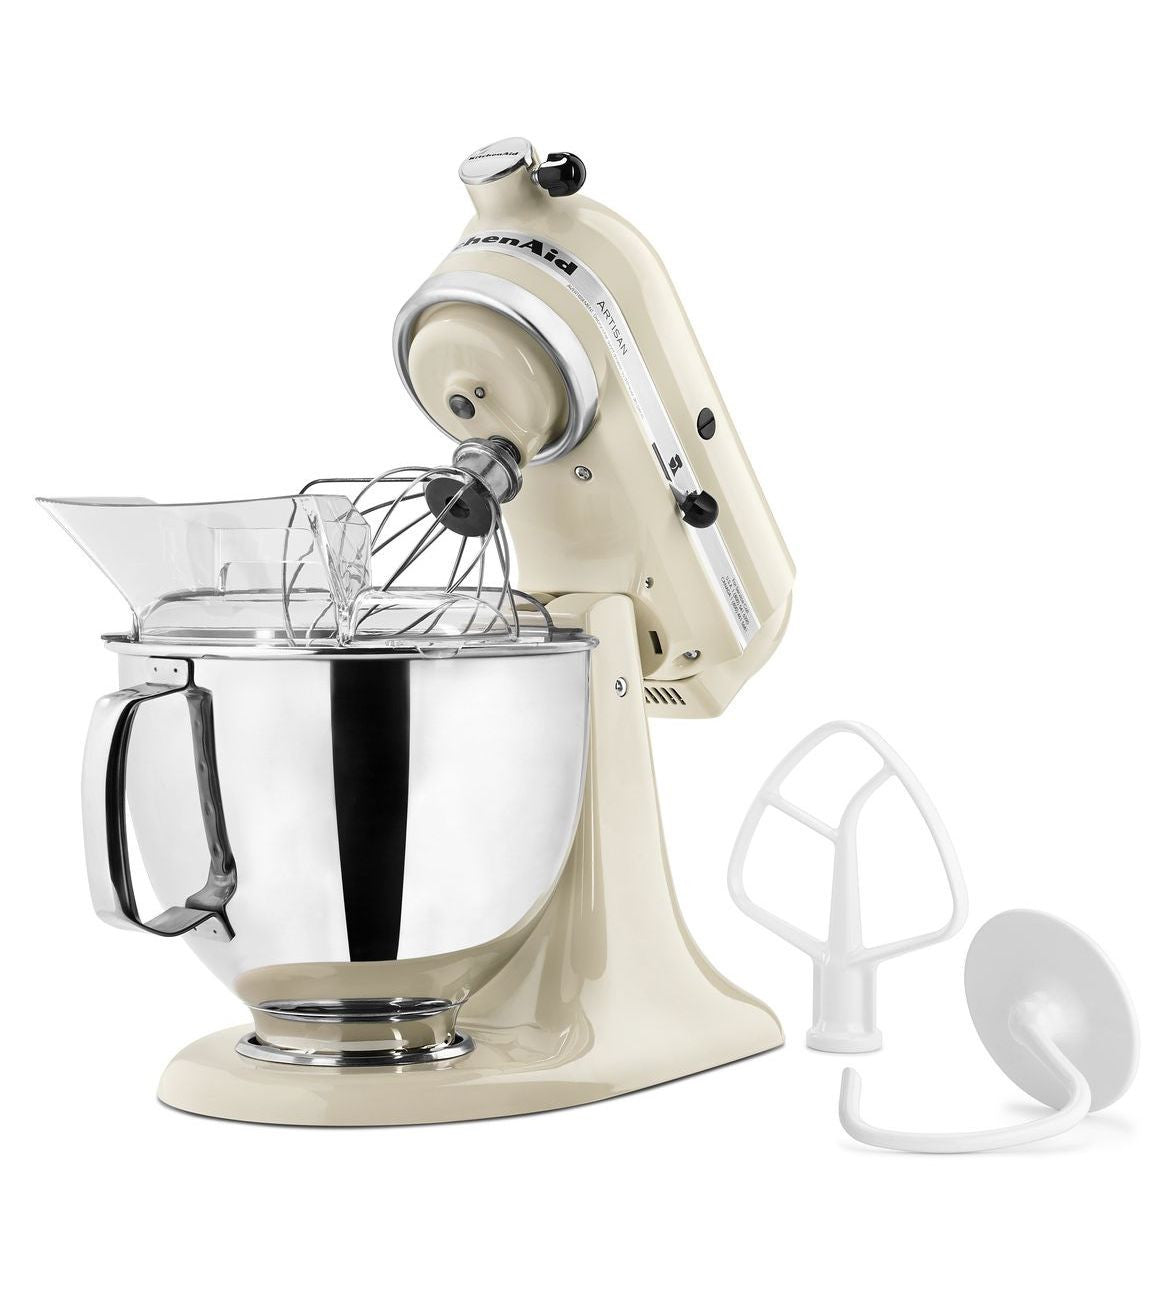 Kitchenaid 5 Qt. Artisan Series with Pouring Shield - Almond Cream KSM150PSAC